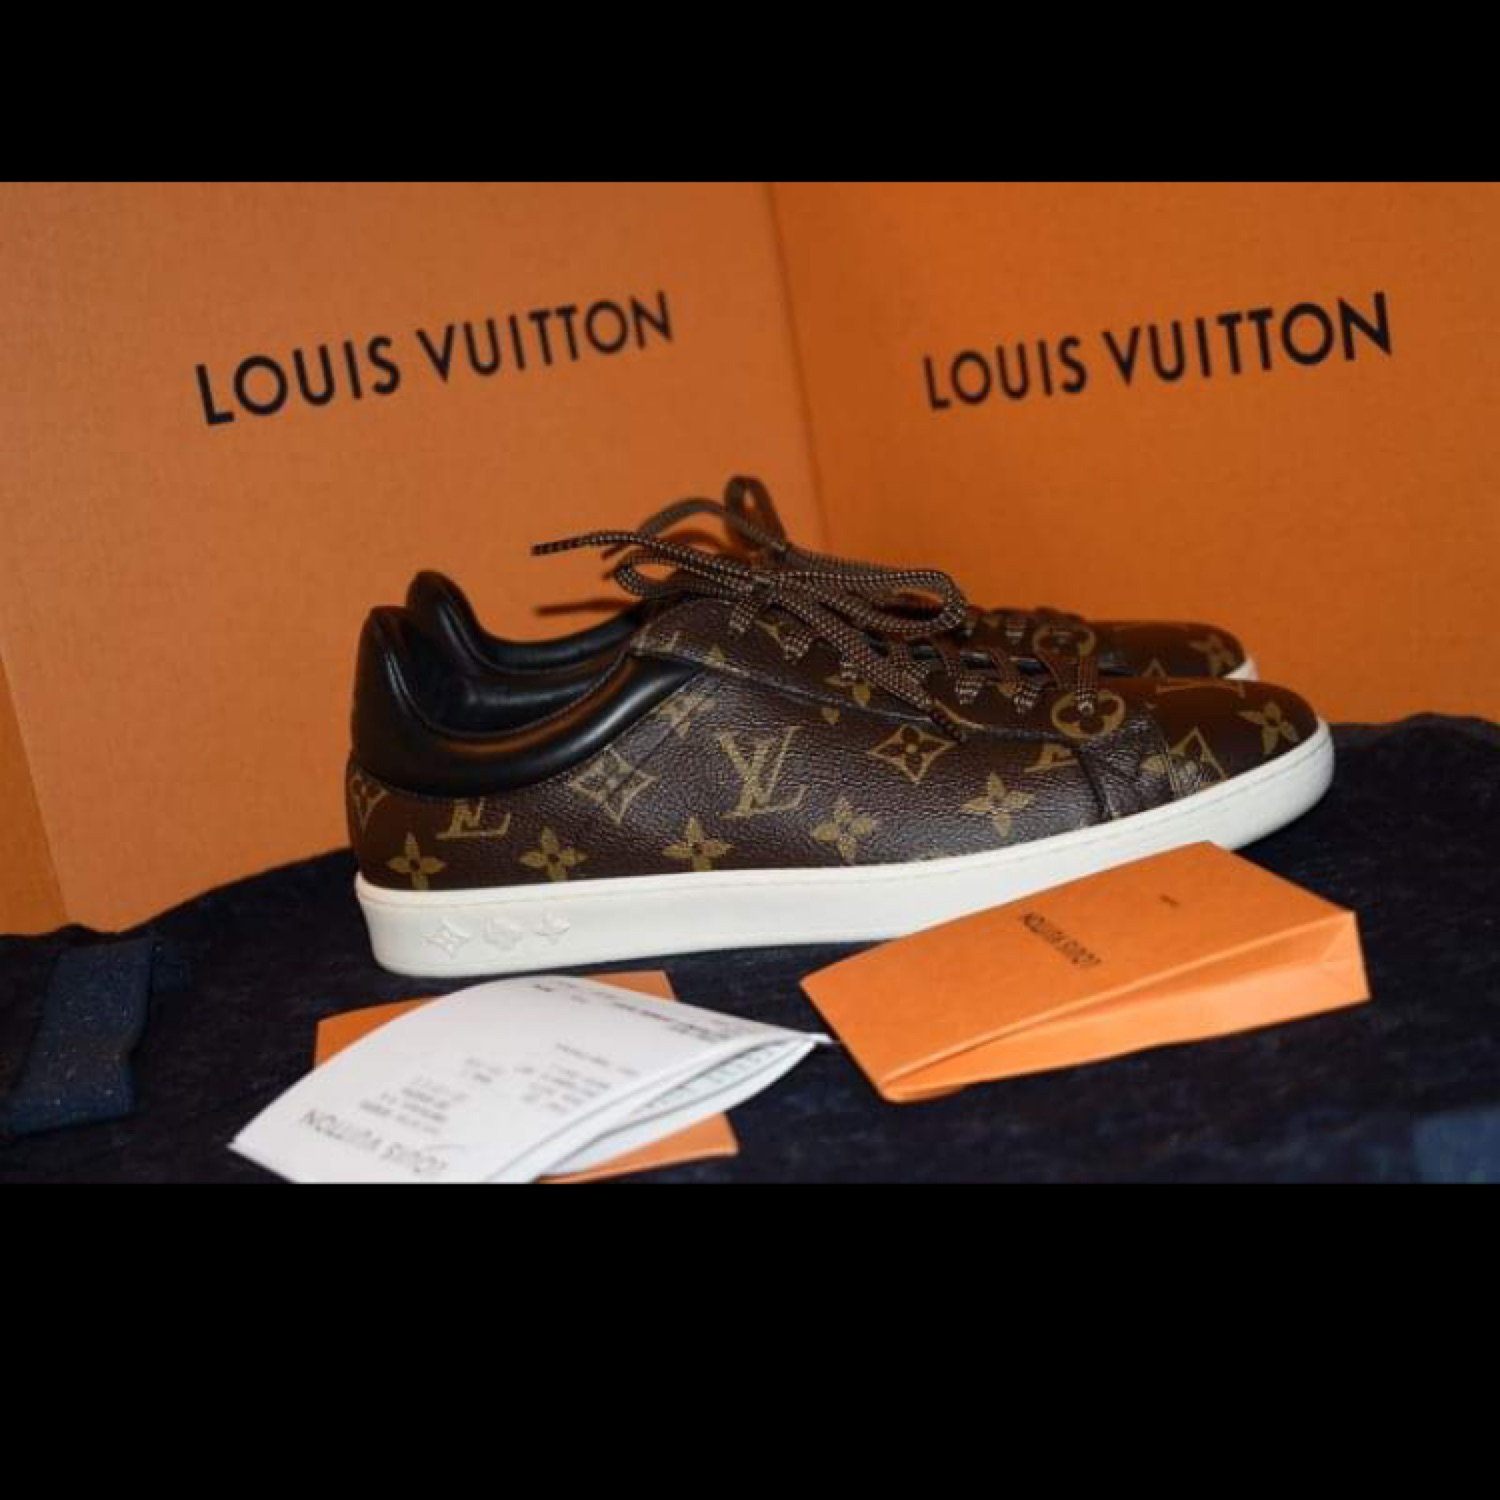 bc60e1020c4 Louis Vuitton Luxembourg Sneakers Size 41